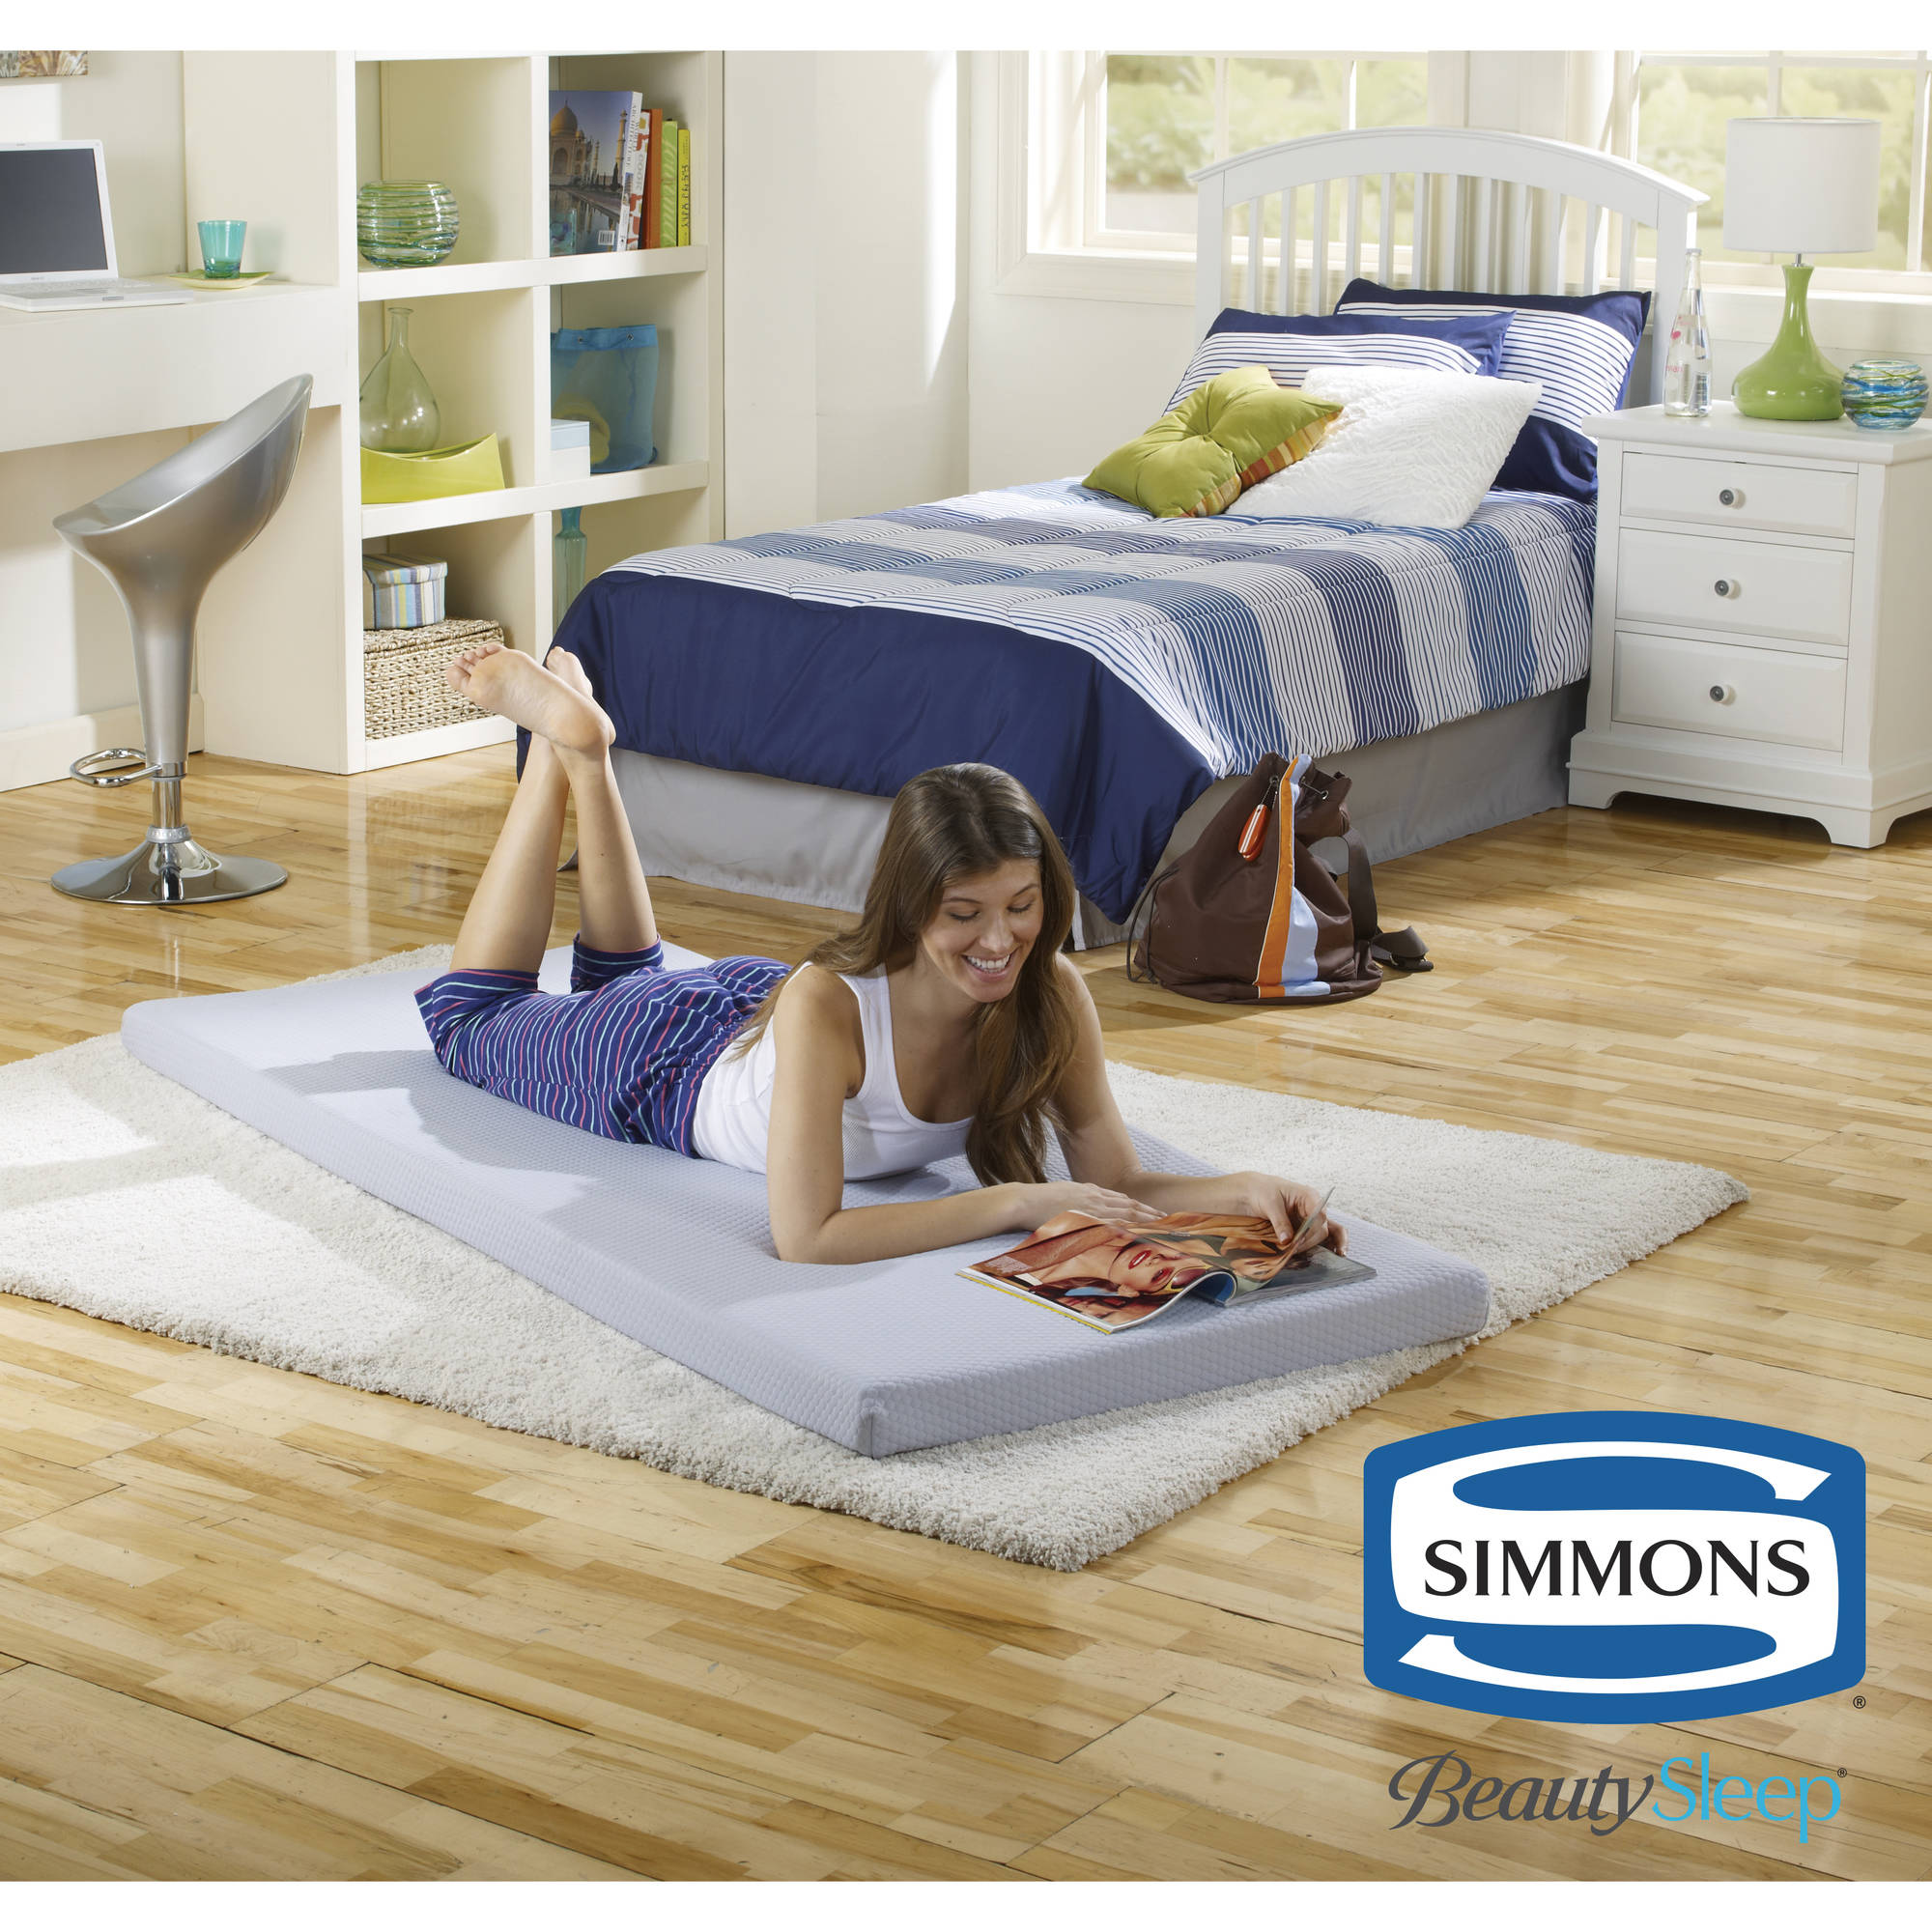 simmons beautysleep siesta twin memory foam guest rollup extra portable mattress bed image 1